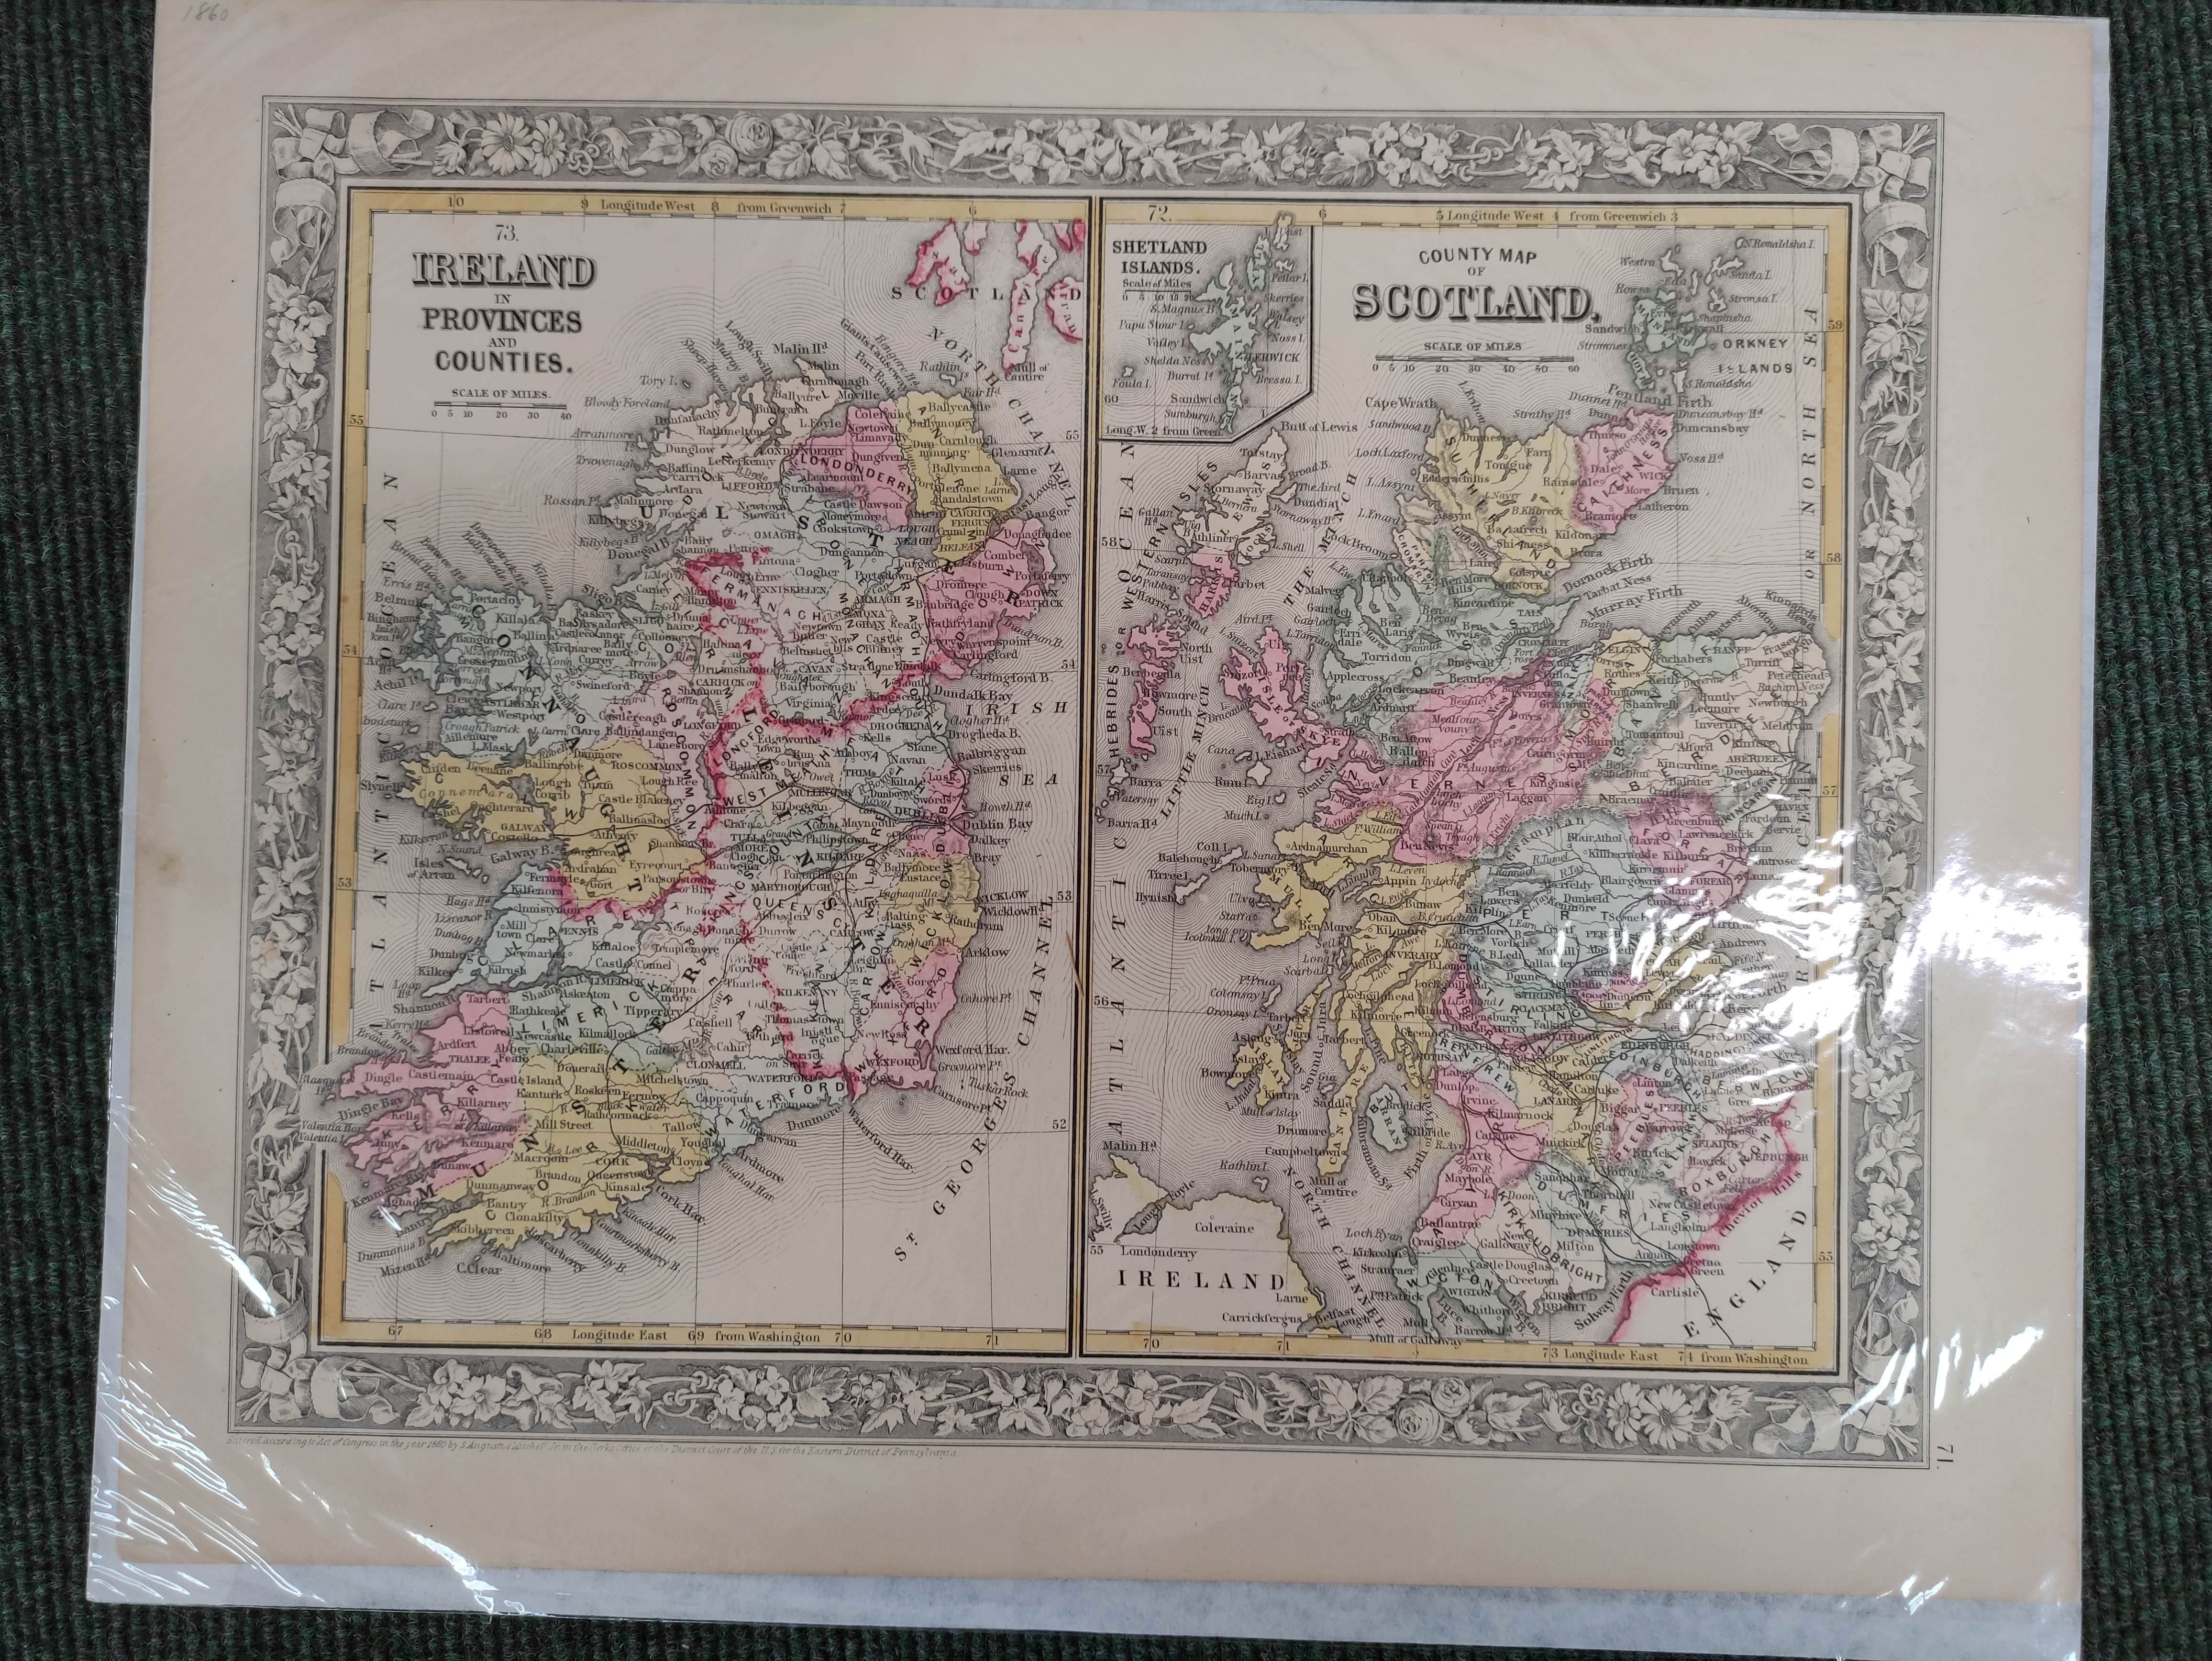 Engraved Maps.2 hand coloured eng. double maps of Ireland & Scotland by S. Augustus Mitchell, - Image 7 of 7